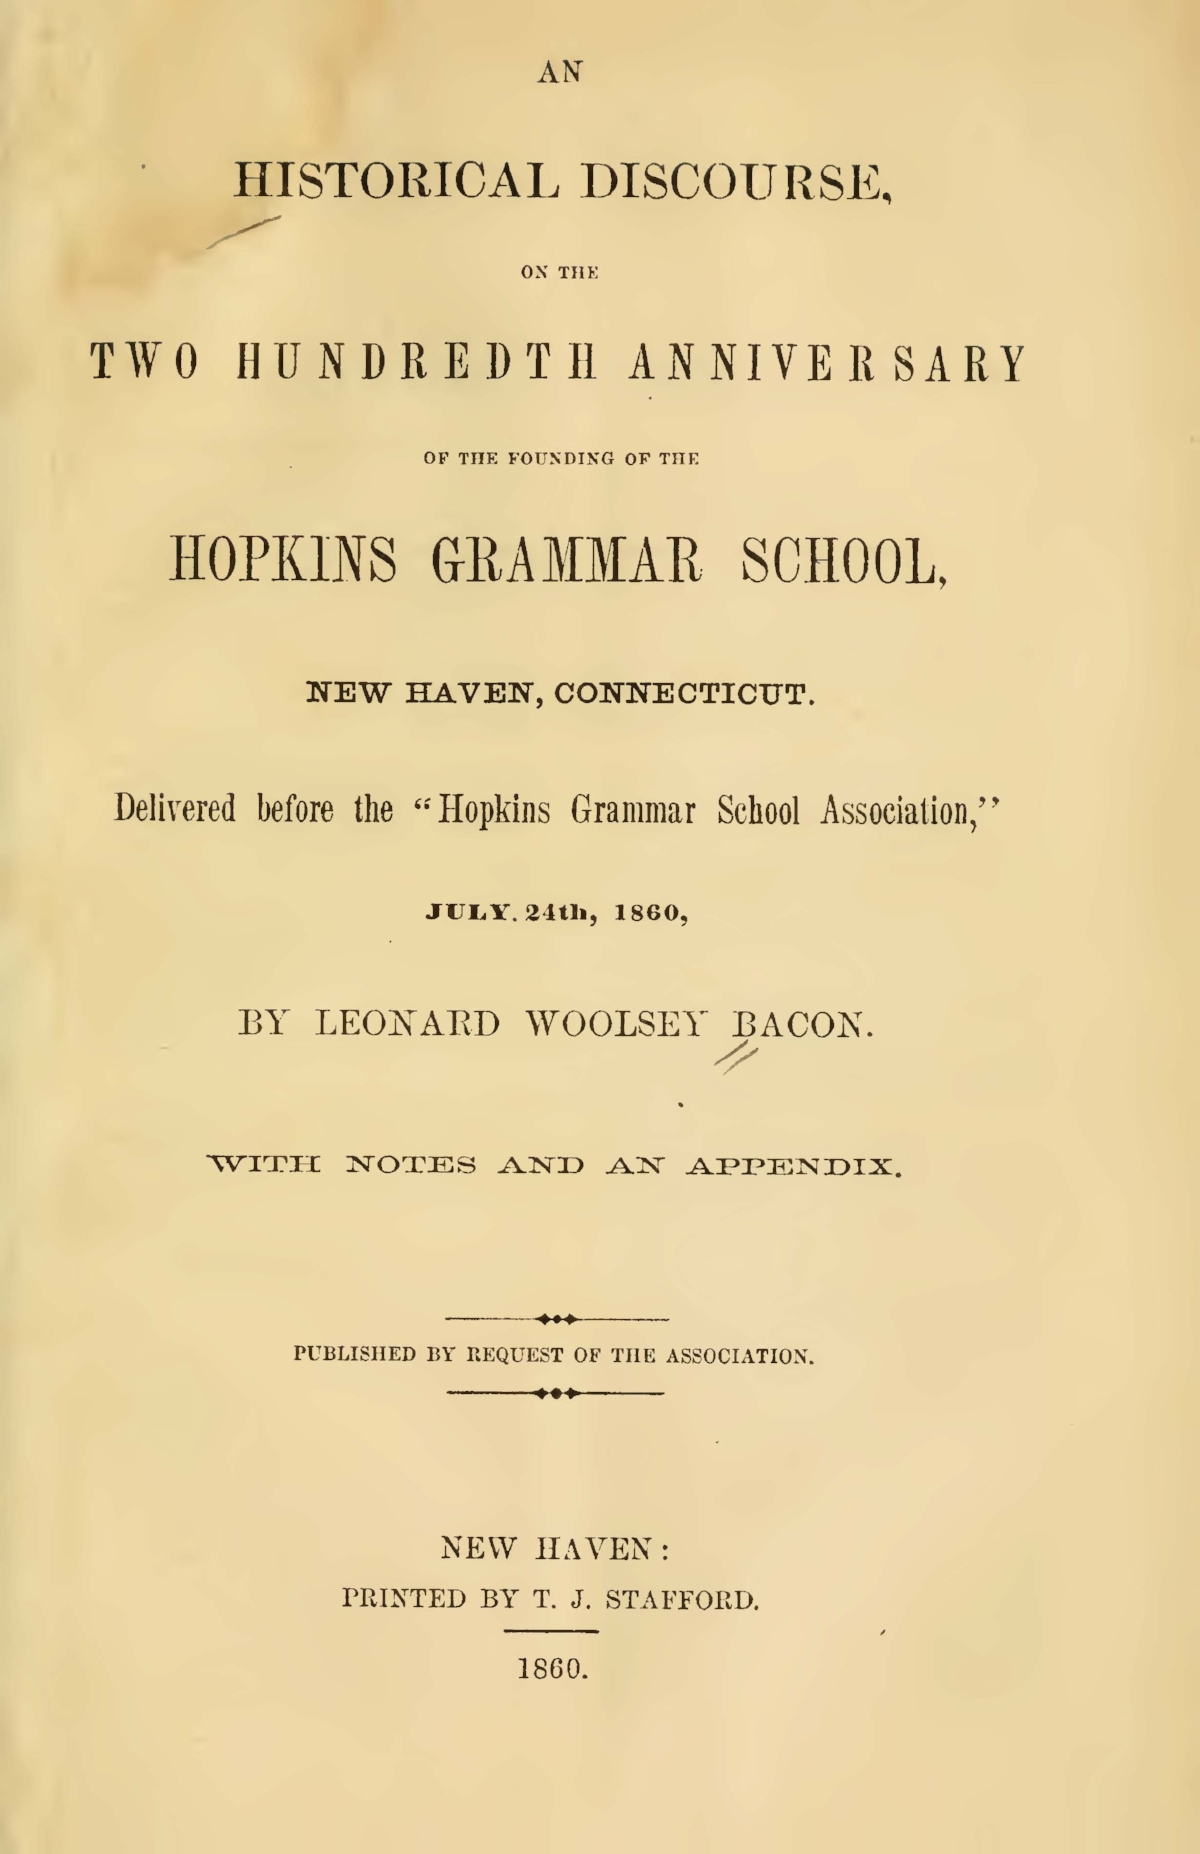 Bacon, Leonard Woolsey, An Historical Discourse Title Page.jpg